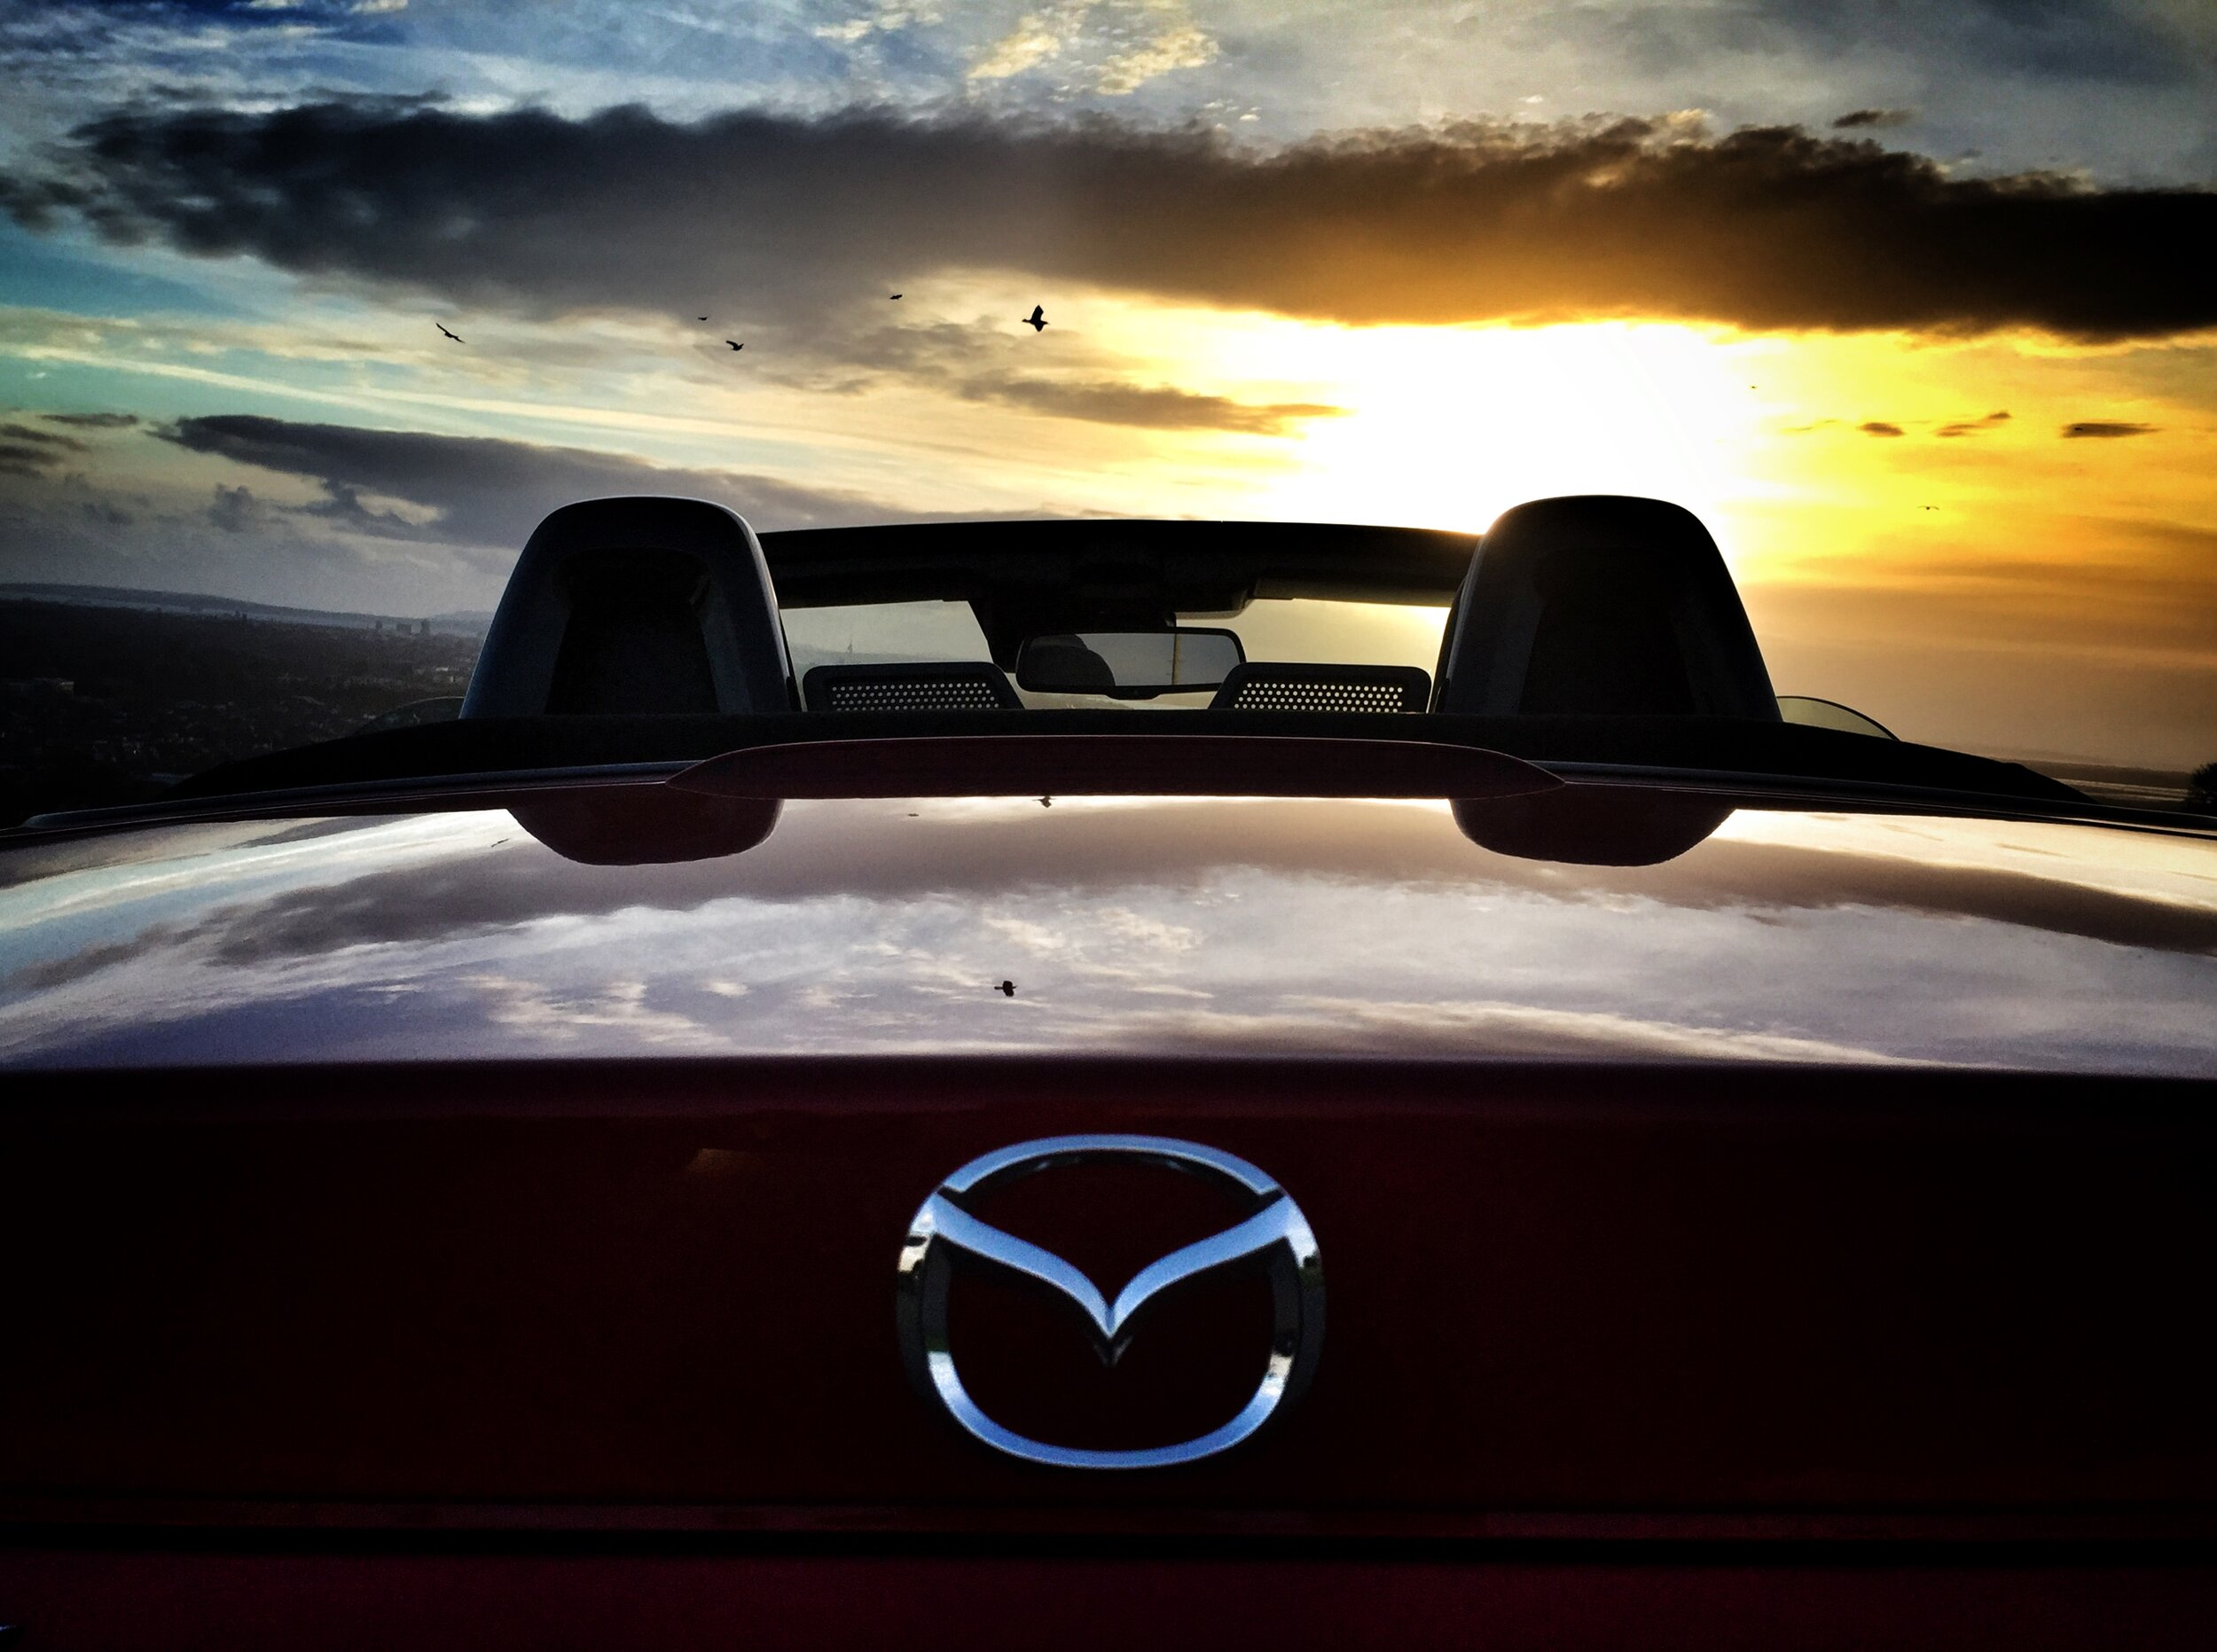 MX5_Sunset.JPG